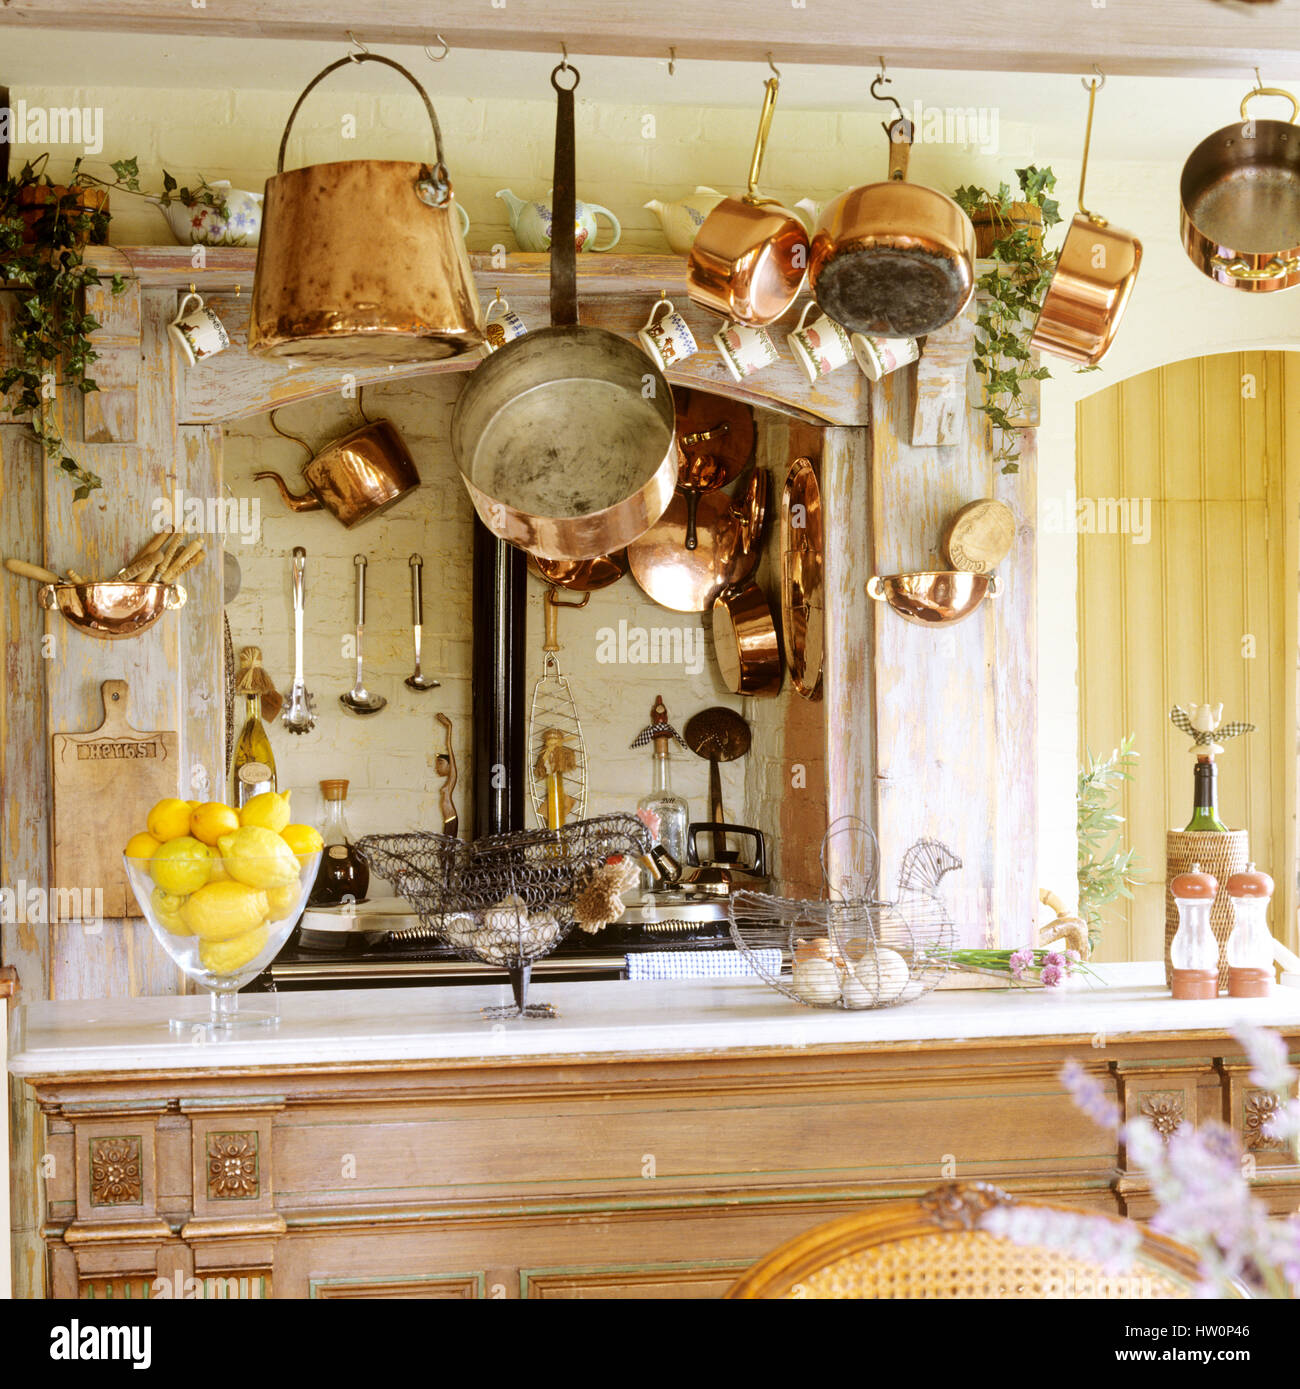 Wooden bench in rustic style kitchen. Stock Photo